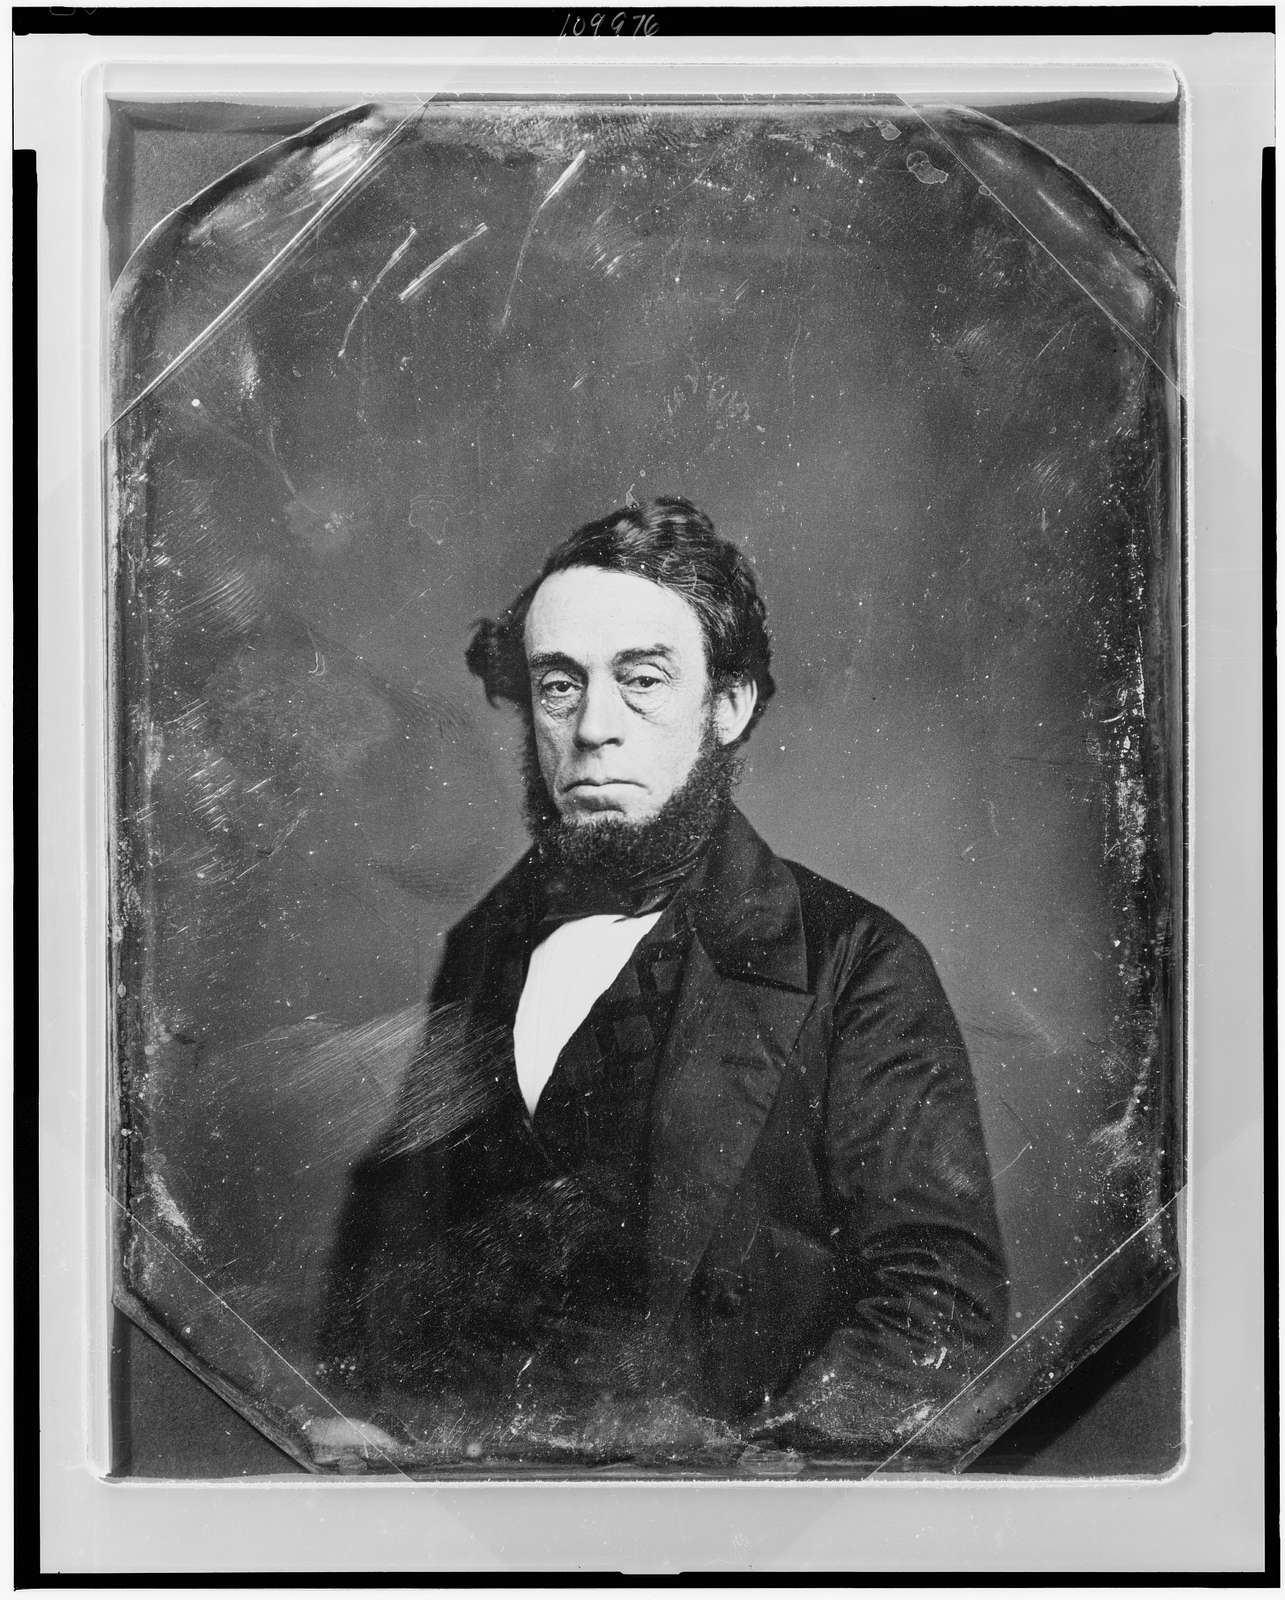 [Unidentified man, half-length portrait, three-quarters to the left, eyes facing front, with beard]